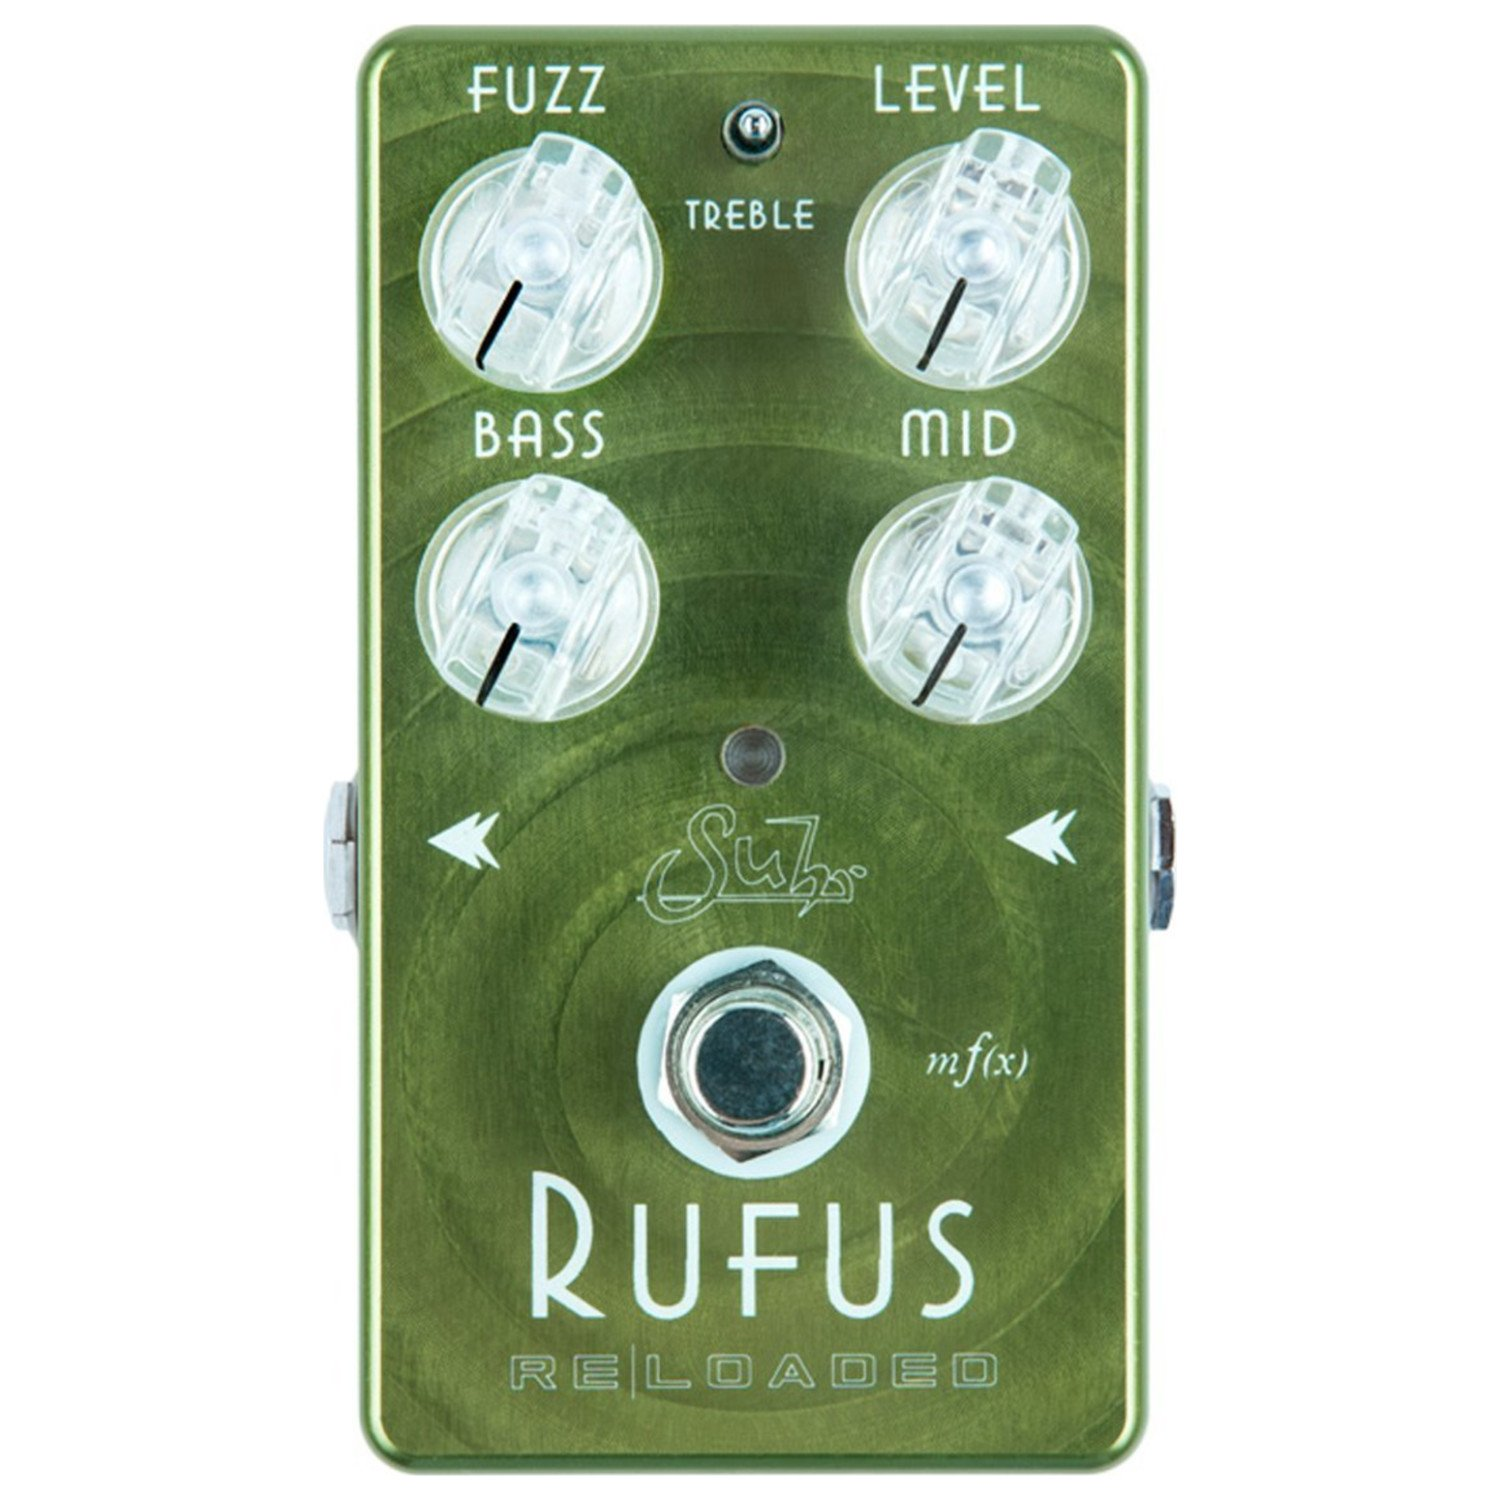 Suhr Rufus Reloaded Fuzz Pedal by Suhr